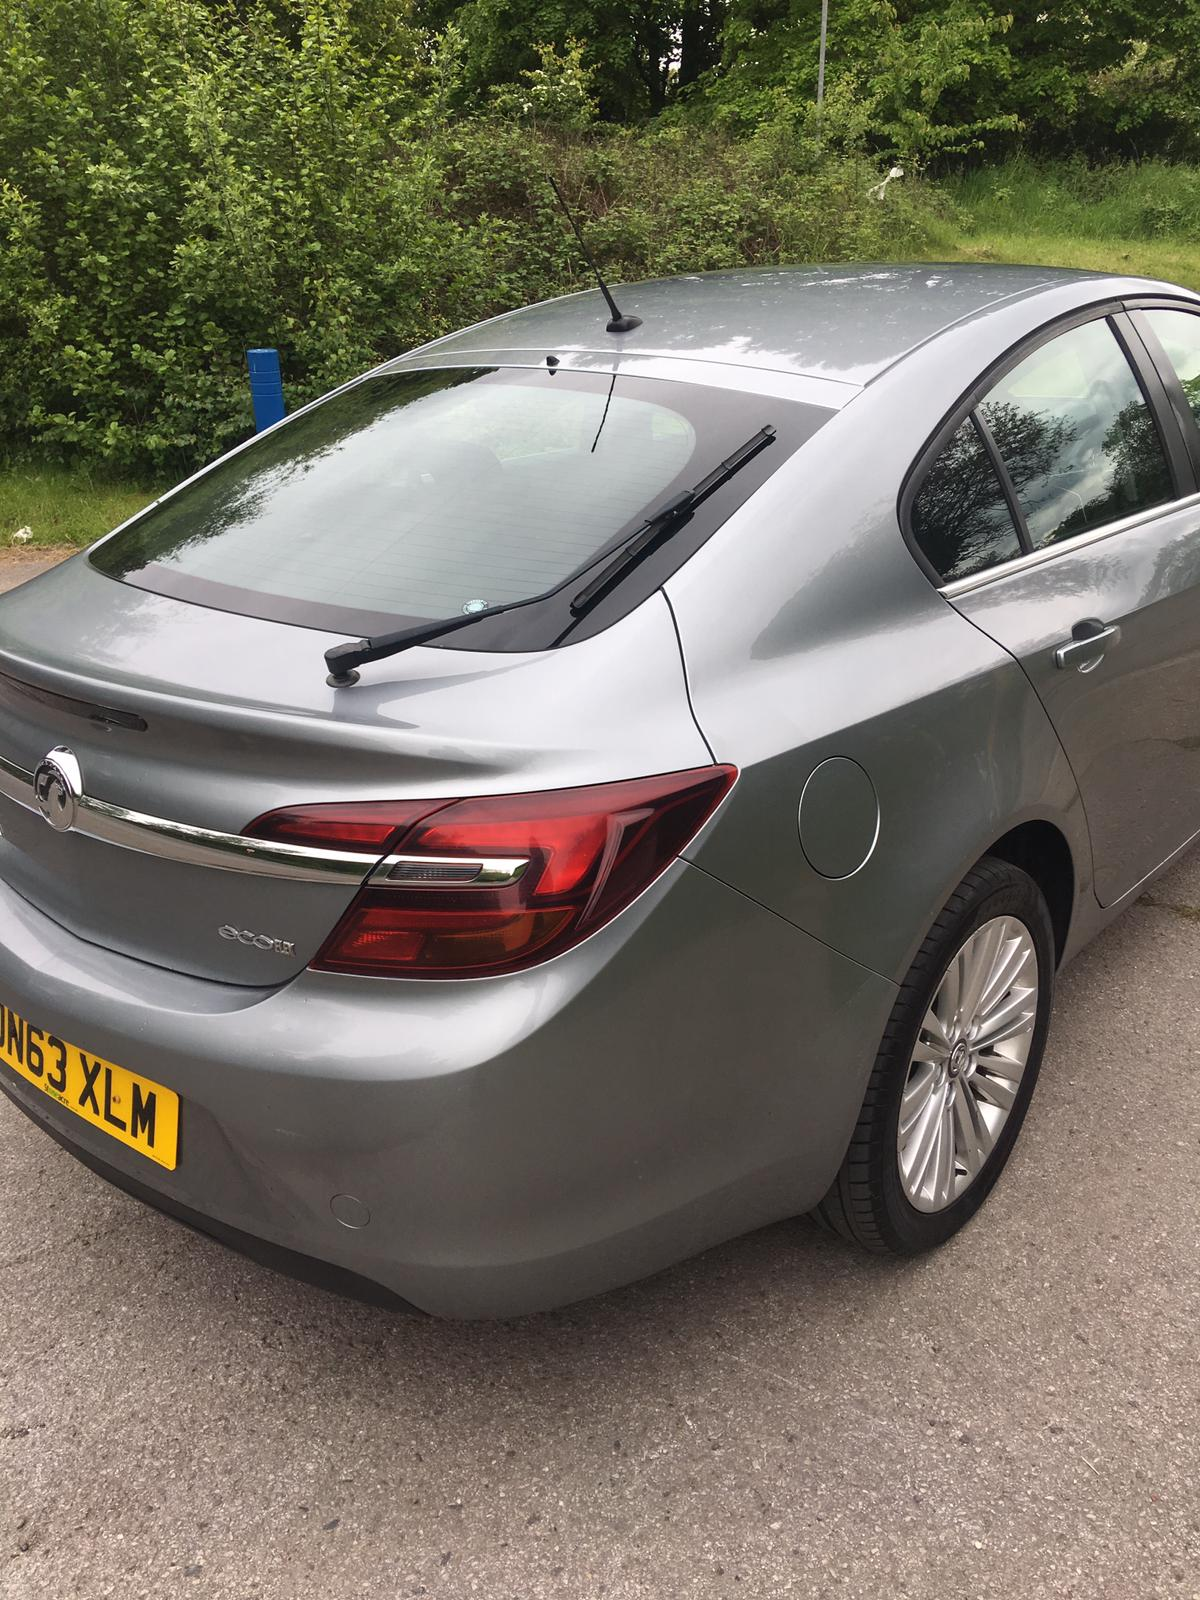 Lot 69 - 2013/63 REG VAUXHALL INSIGNIA DESIGN CDTI ECO 2.0 DIESEL SILVER, 5 DOOR HATCHBACK *NO VAT*